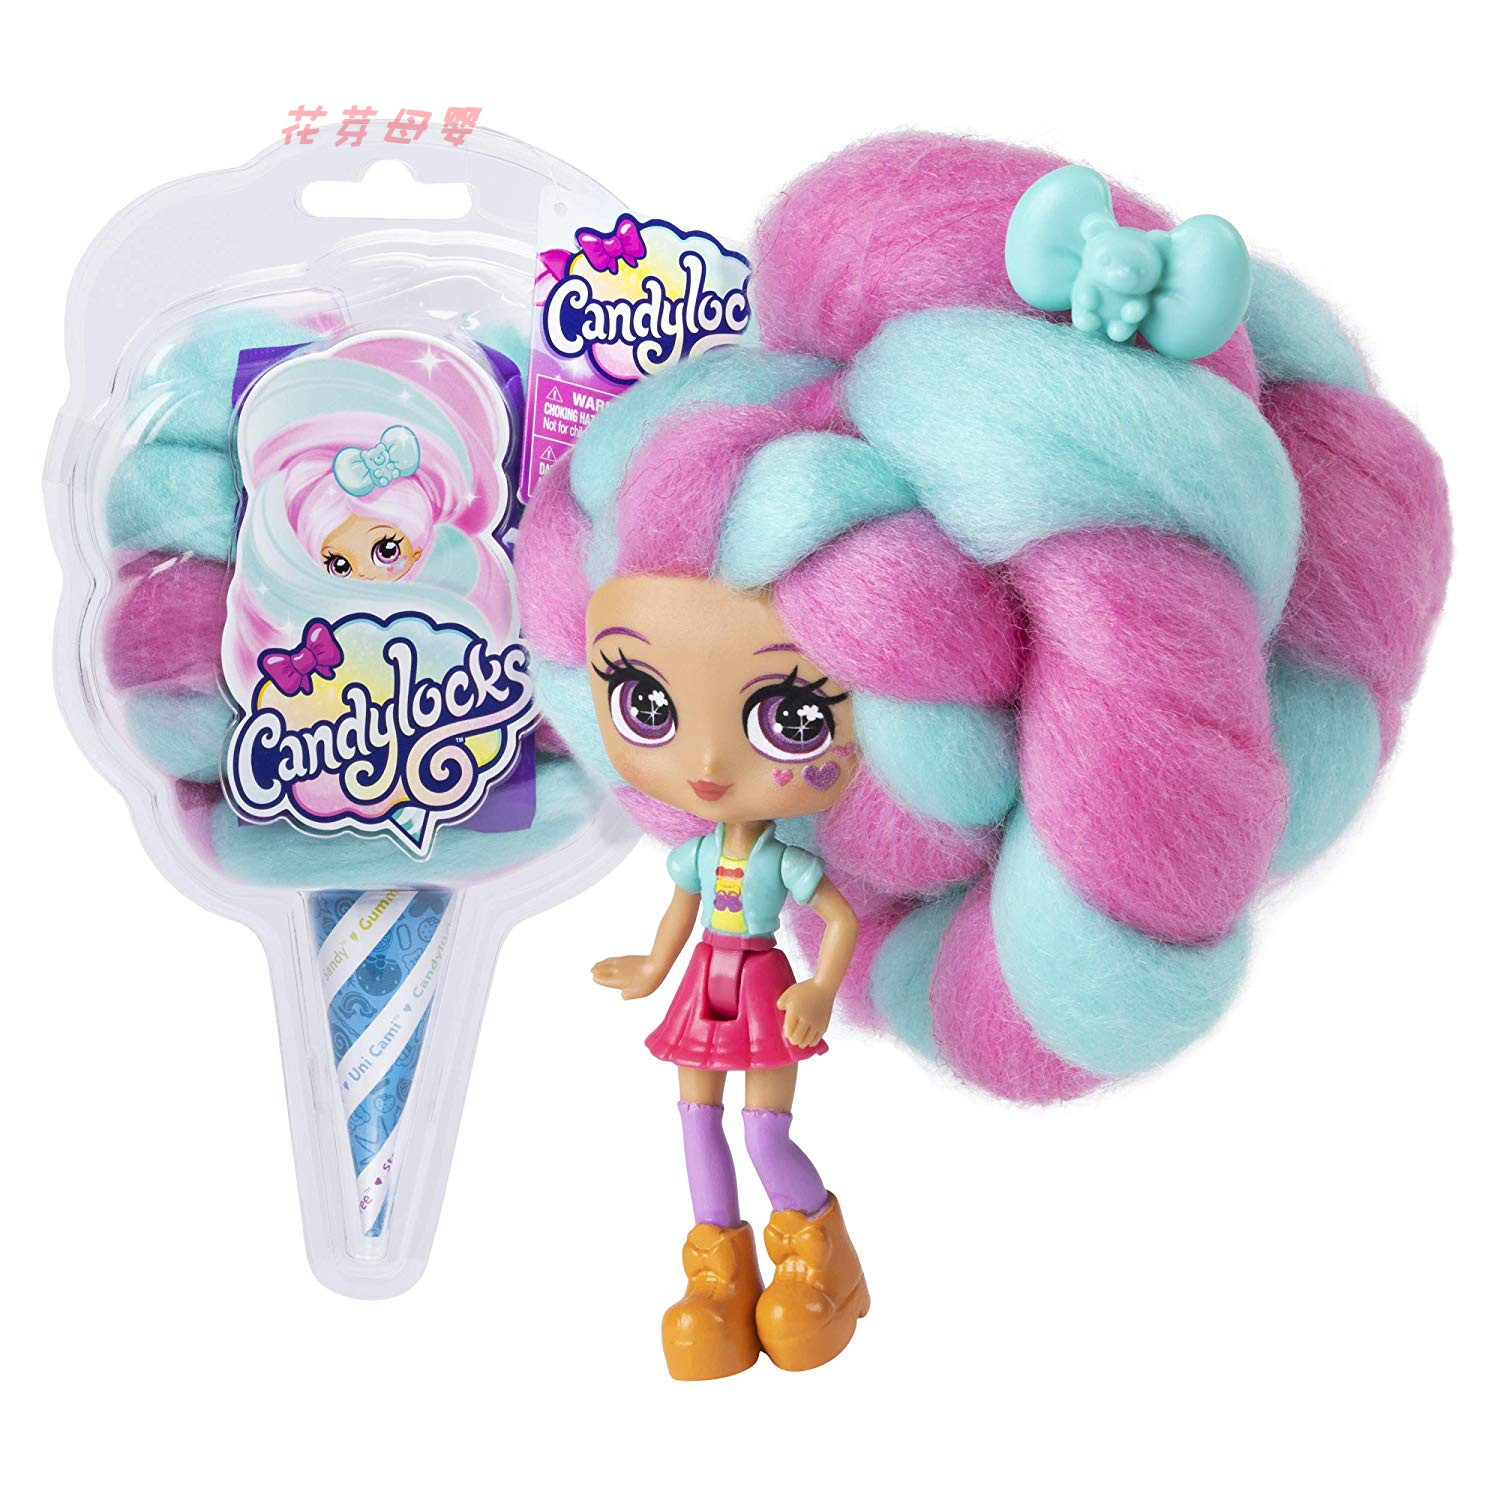 Reissue  Sweet Treat Toys Hobbies Dolls Accessories Marshmallow Hair 30cm Surprise Hairstyle With Scented Doll